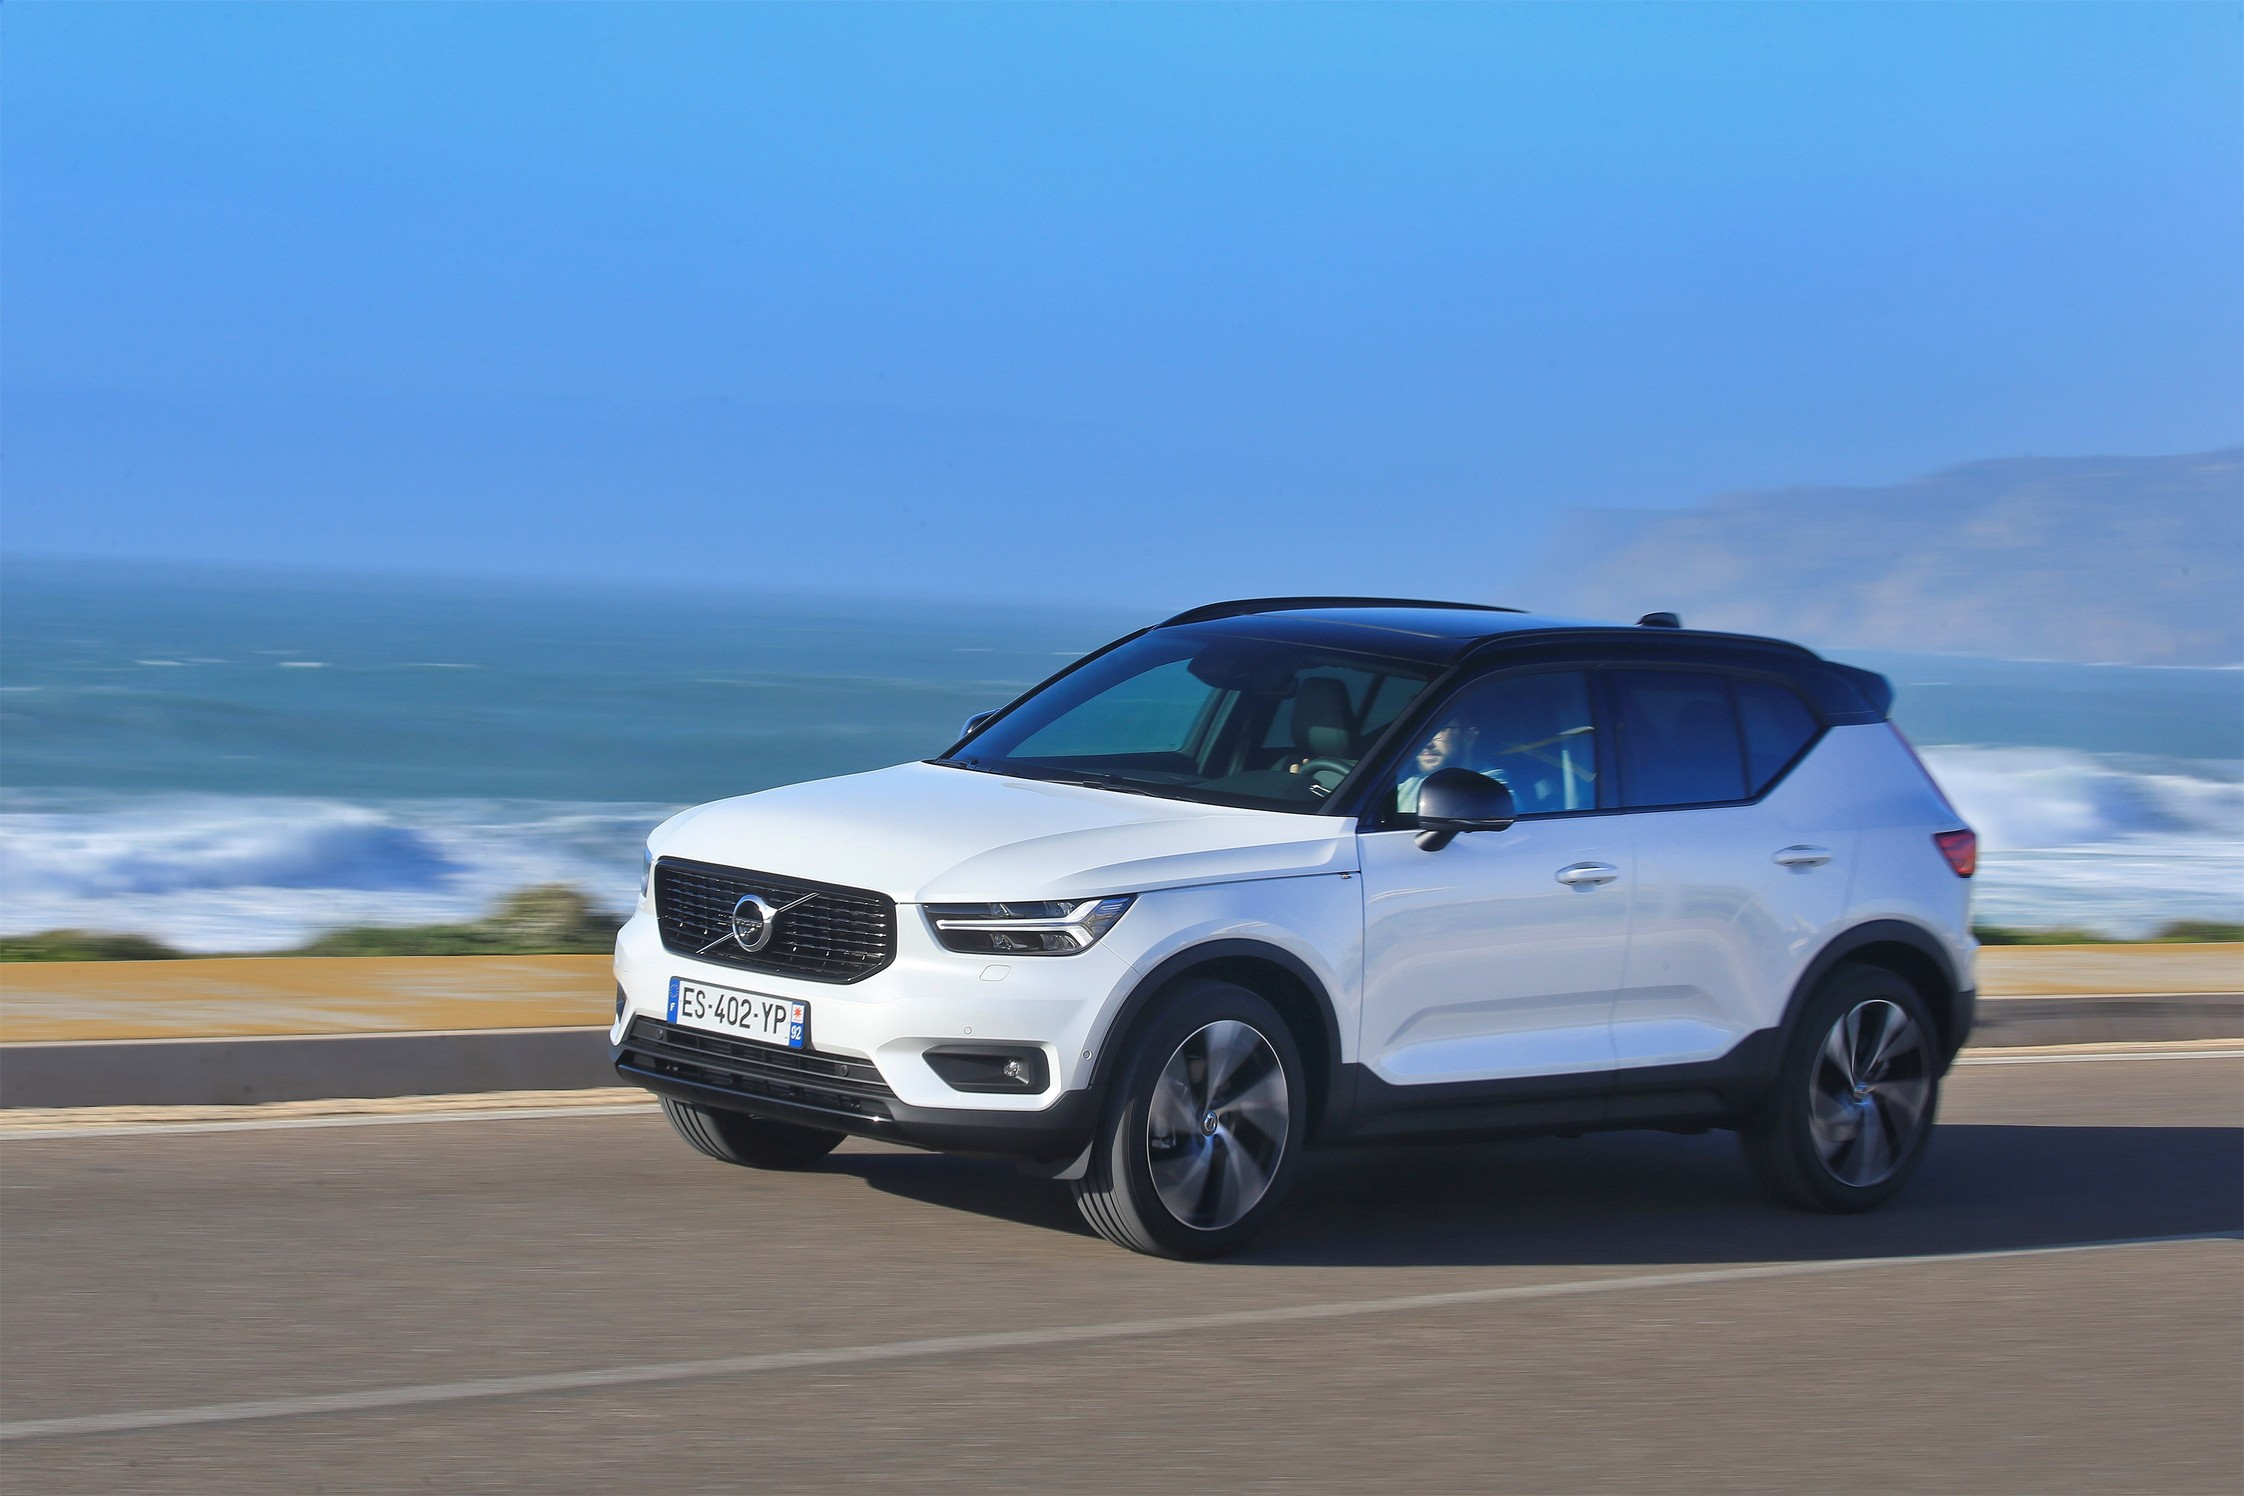 essai volvo xc40 t5 awd geartronic 8 first edition motorlegend. Black Bedroom Furniture Sets. Home Design Ideas